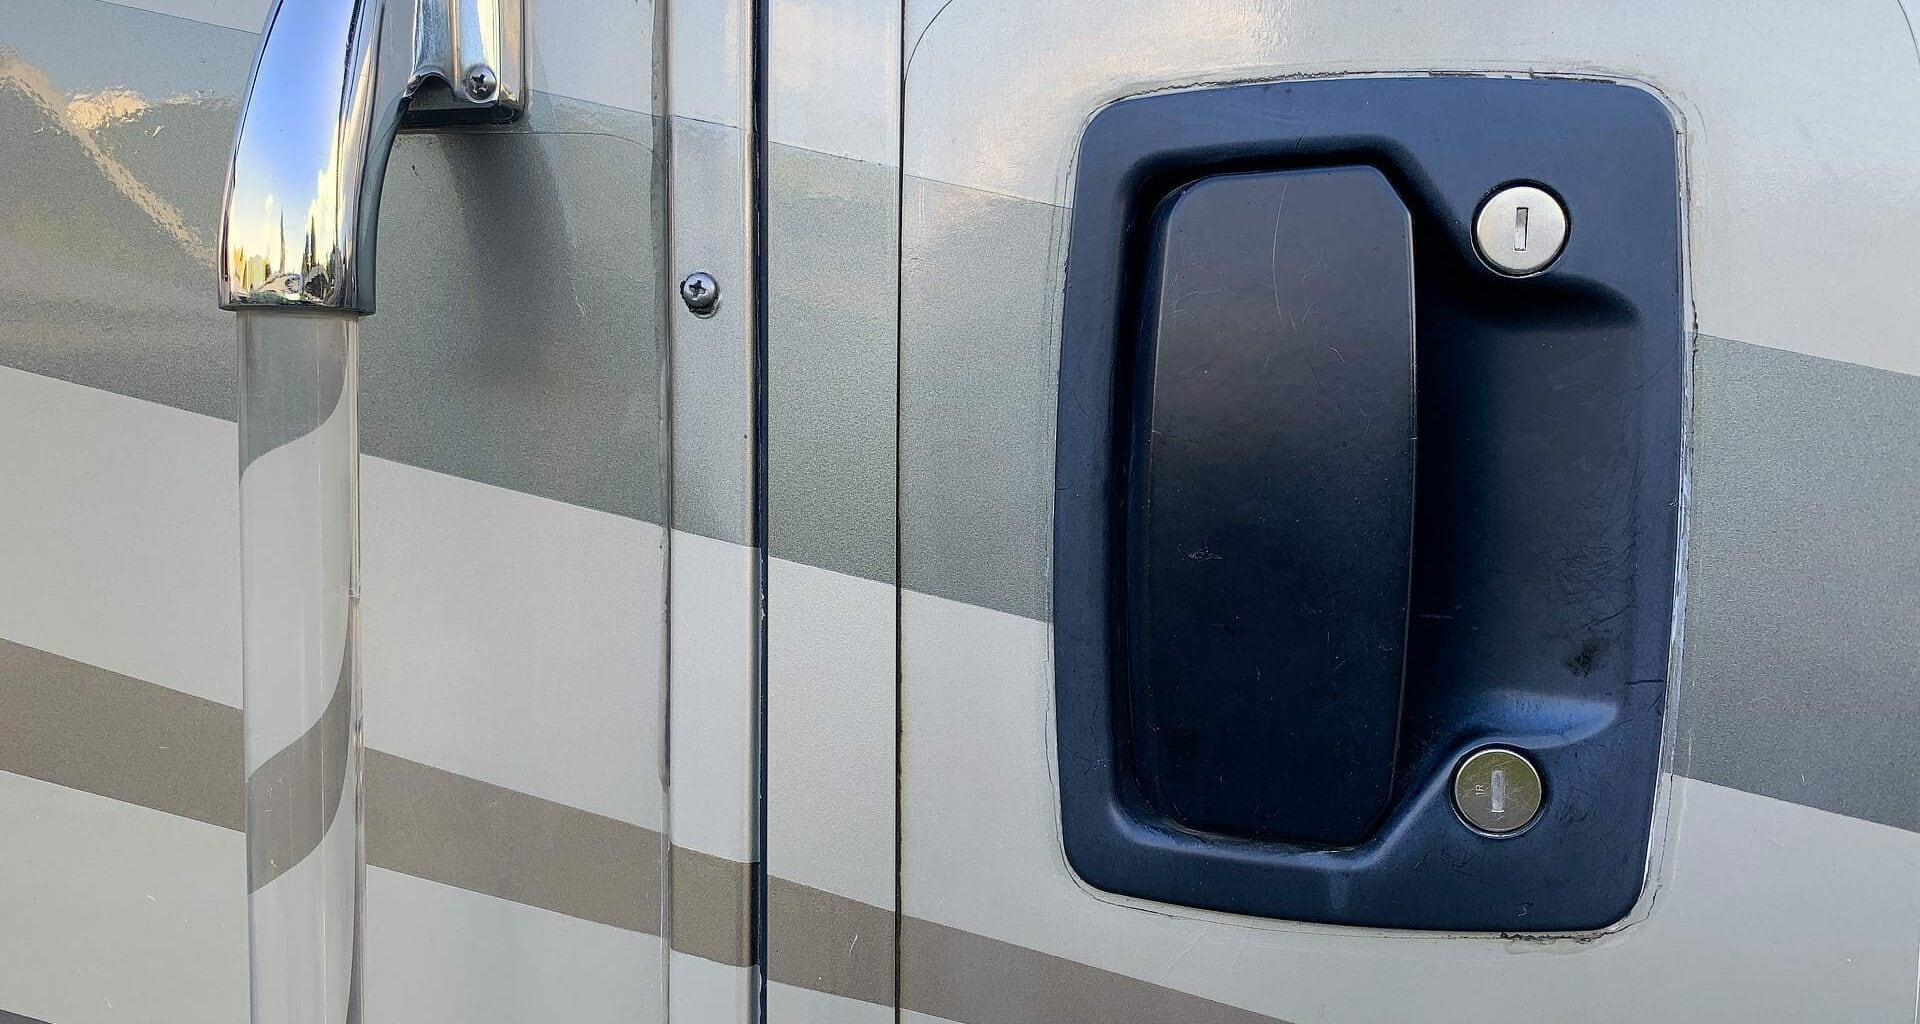 An RV door latch handle from the outside